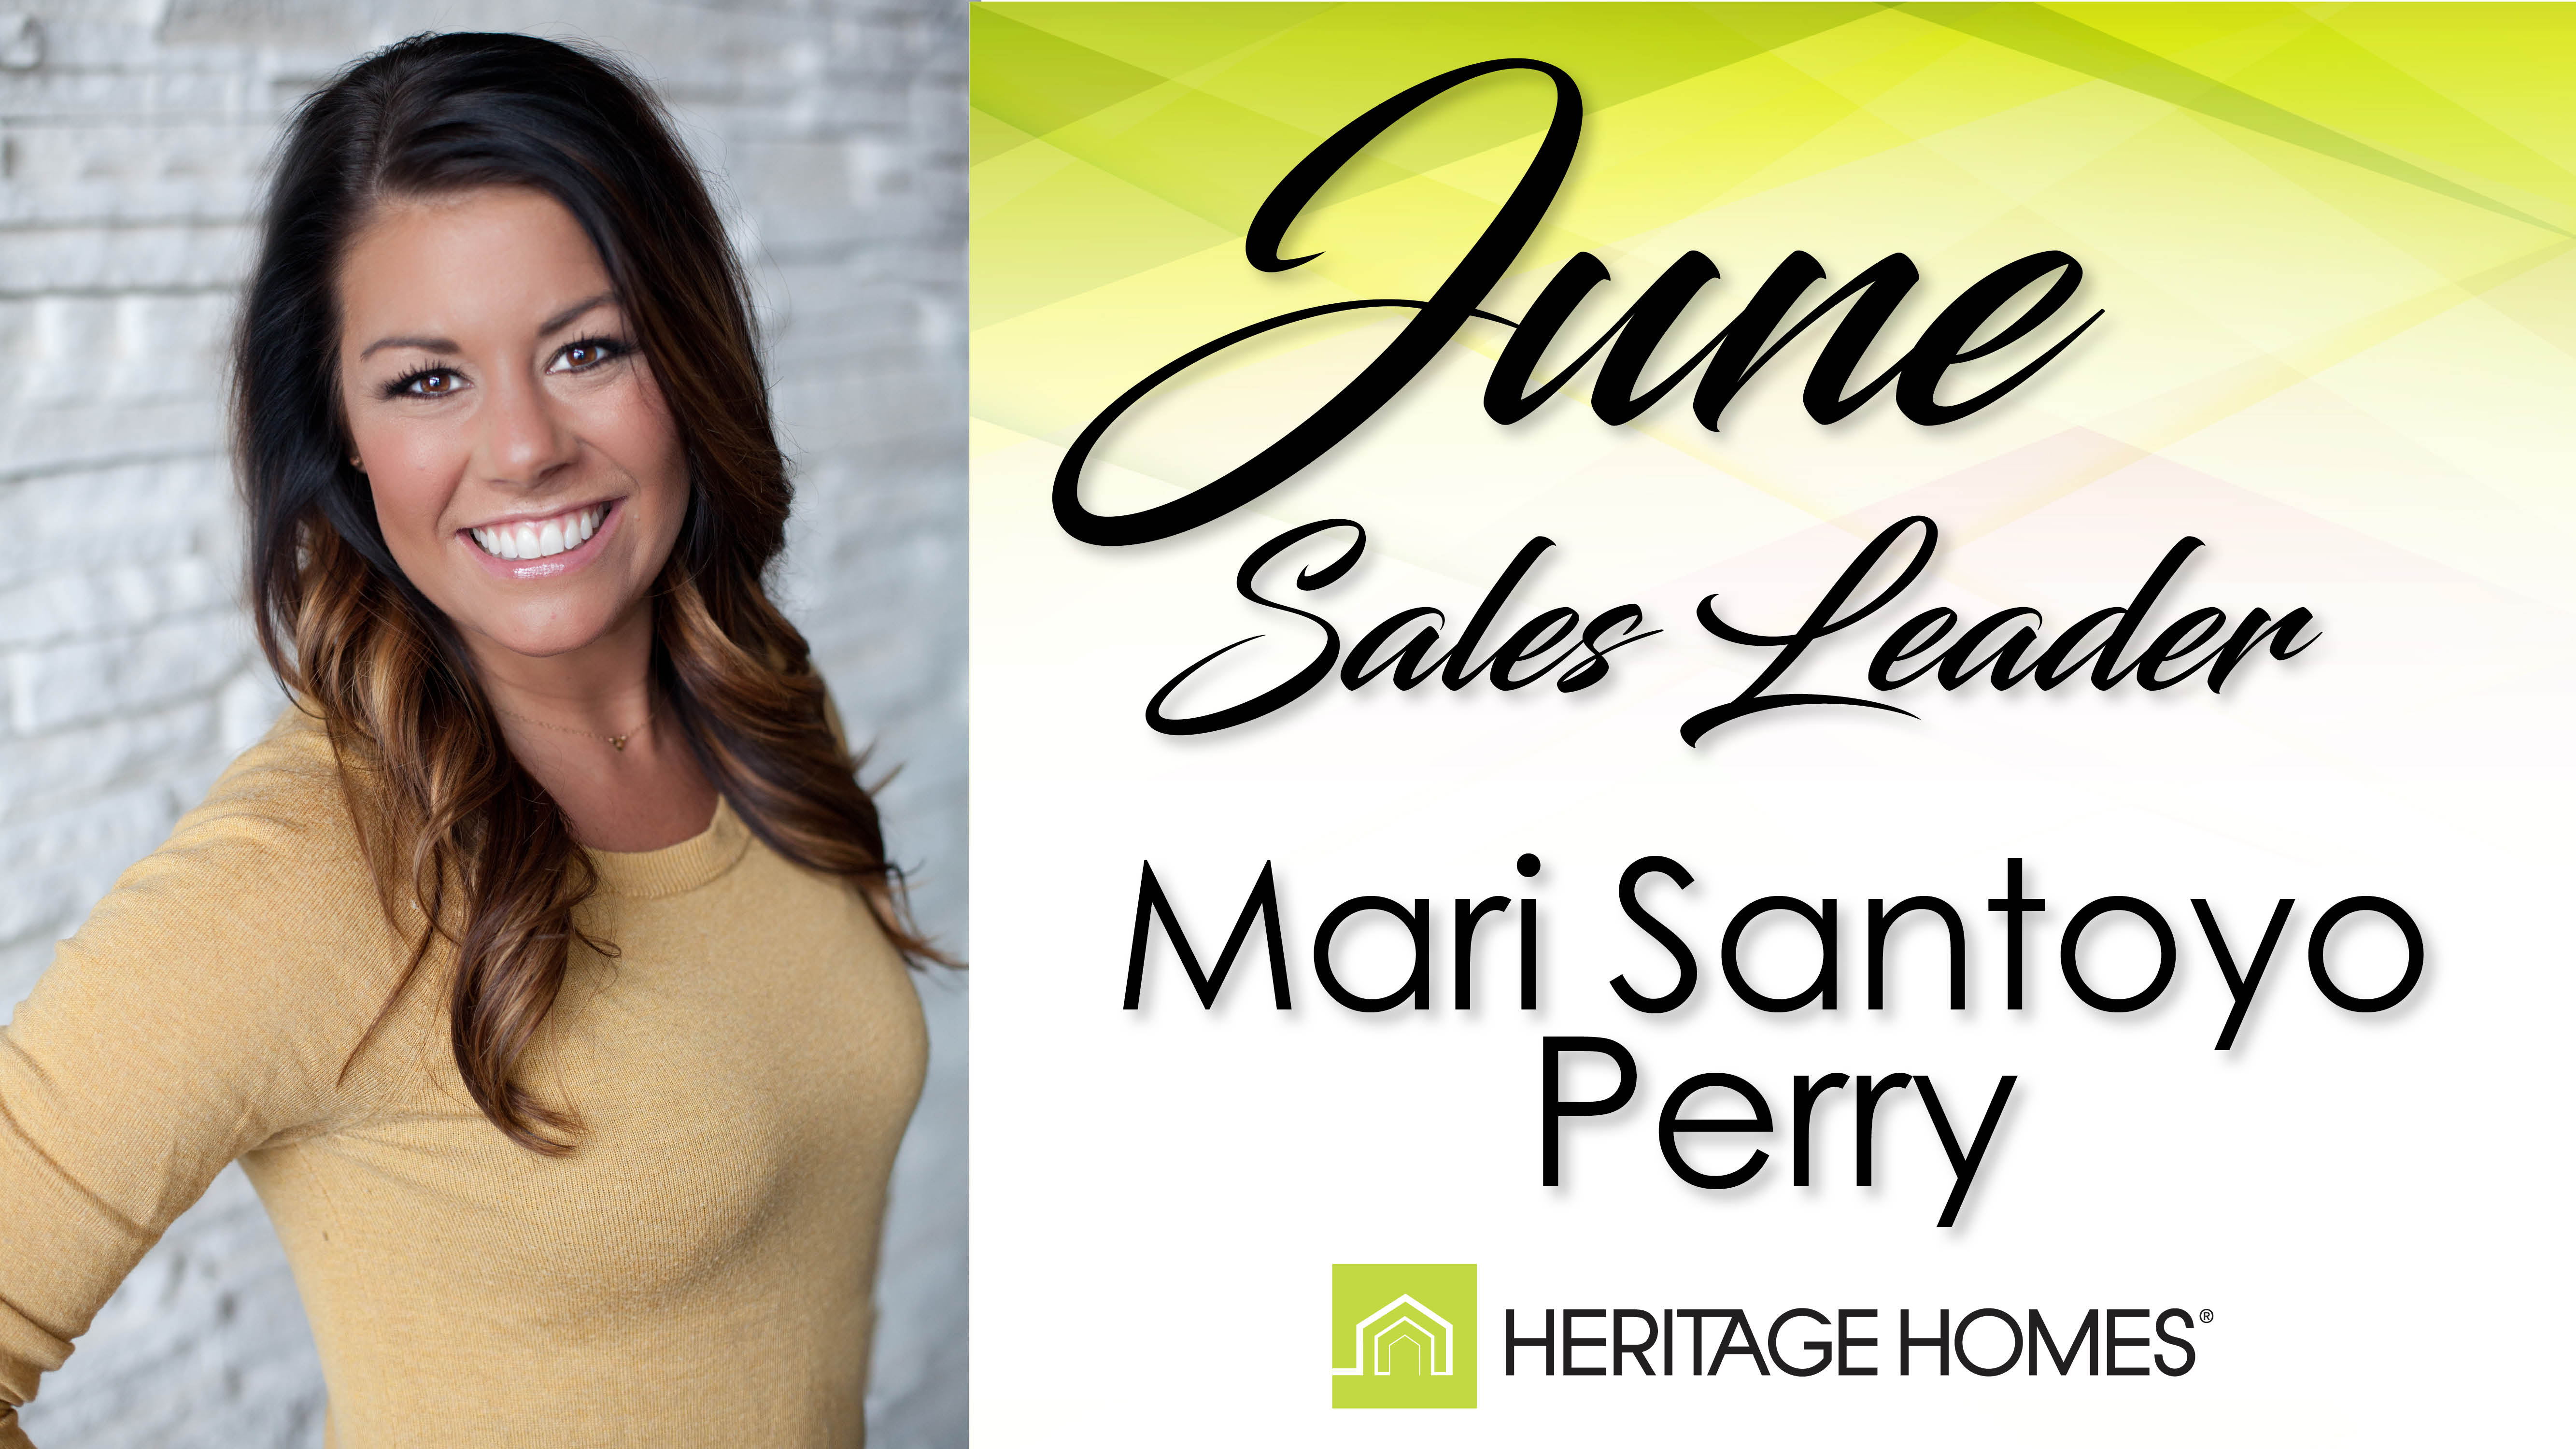 June Sales Leader – Mari Santoyo Perry